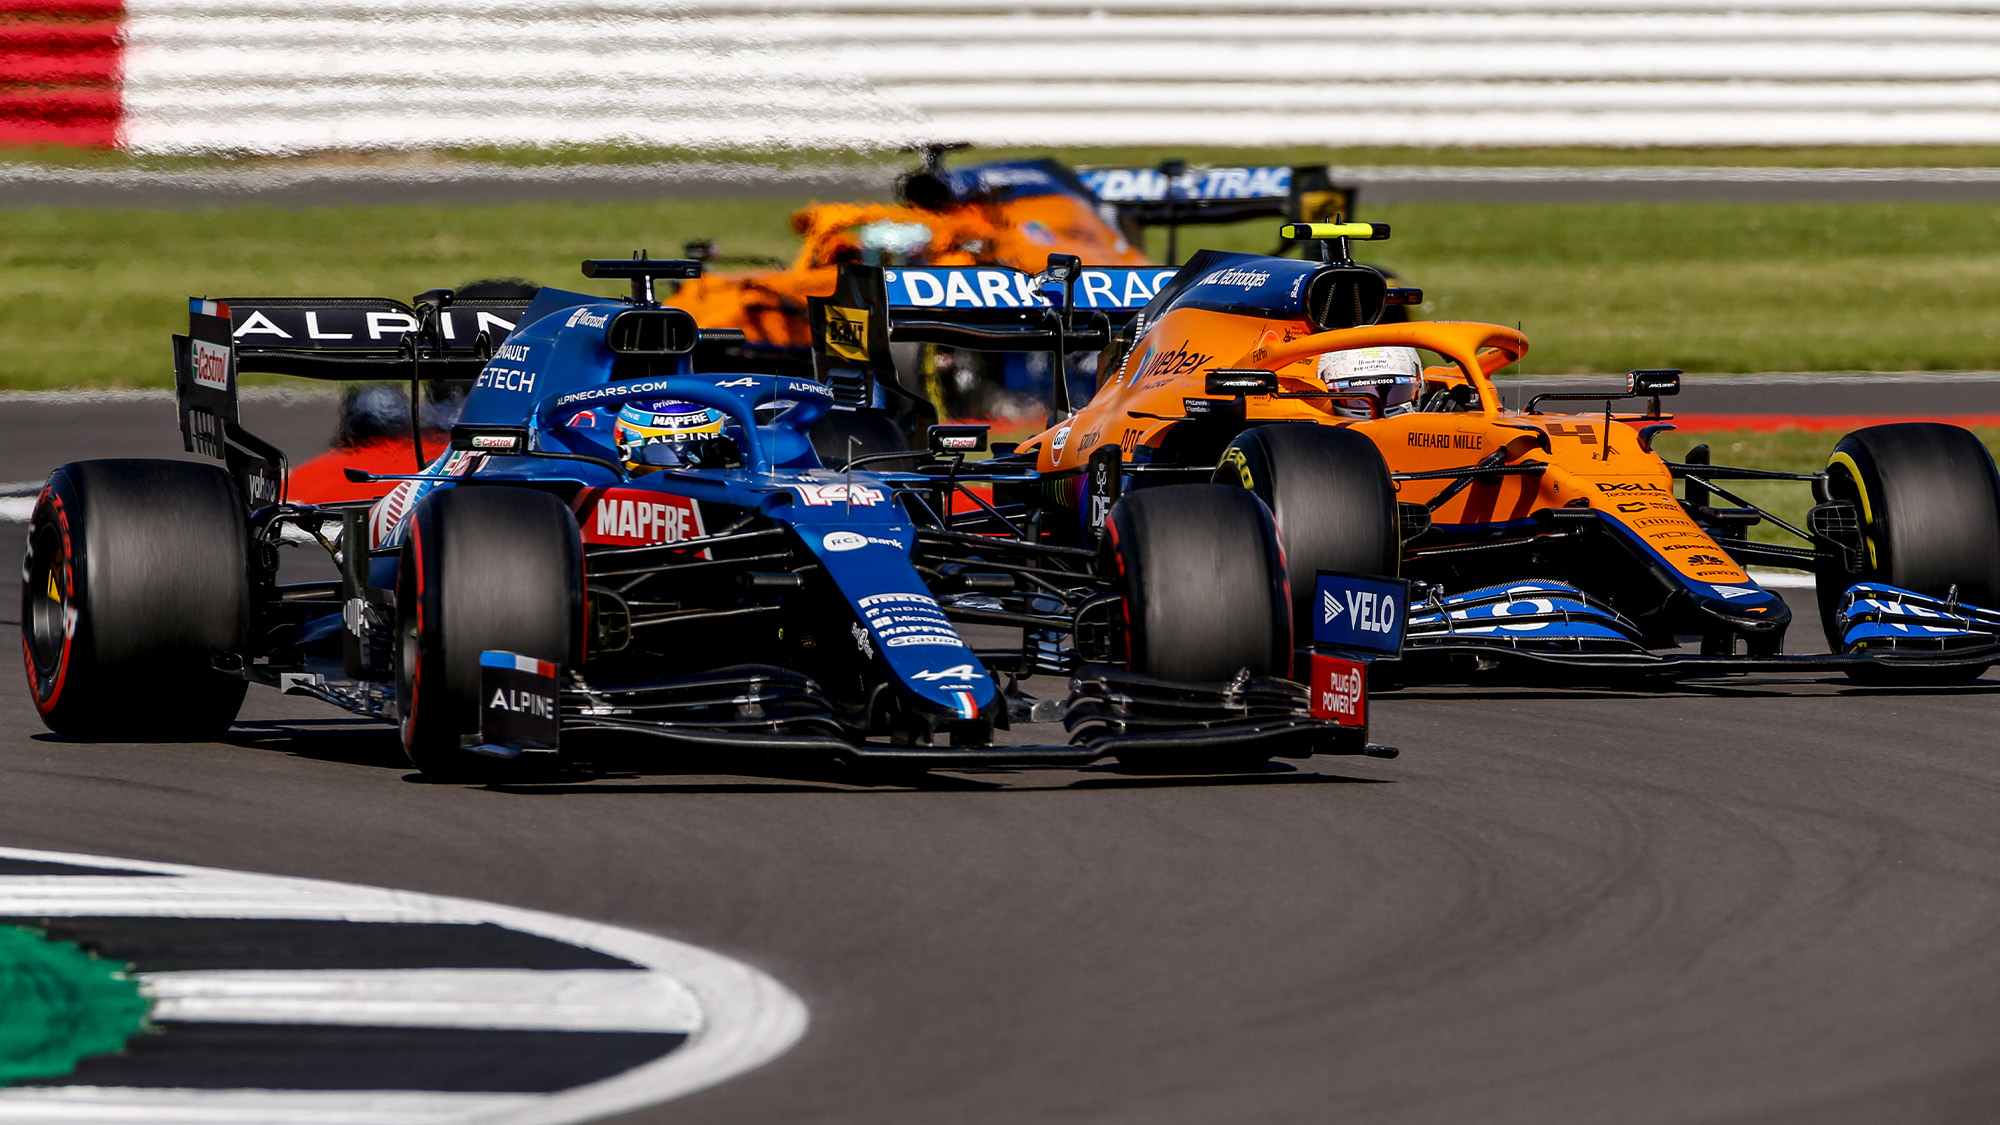 Fernando Alonso and Lando Norris in the 2021 British GP sprint race